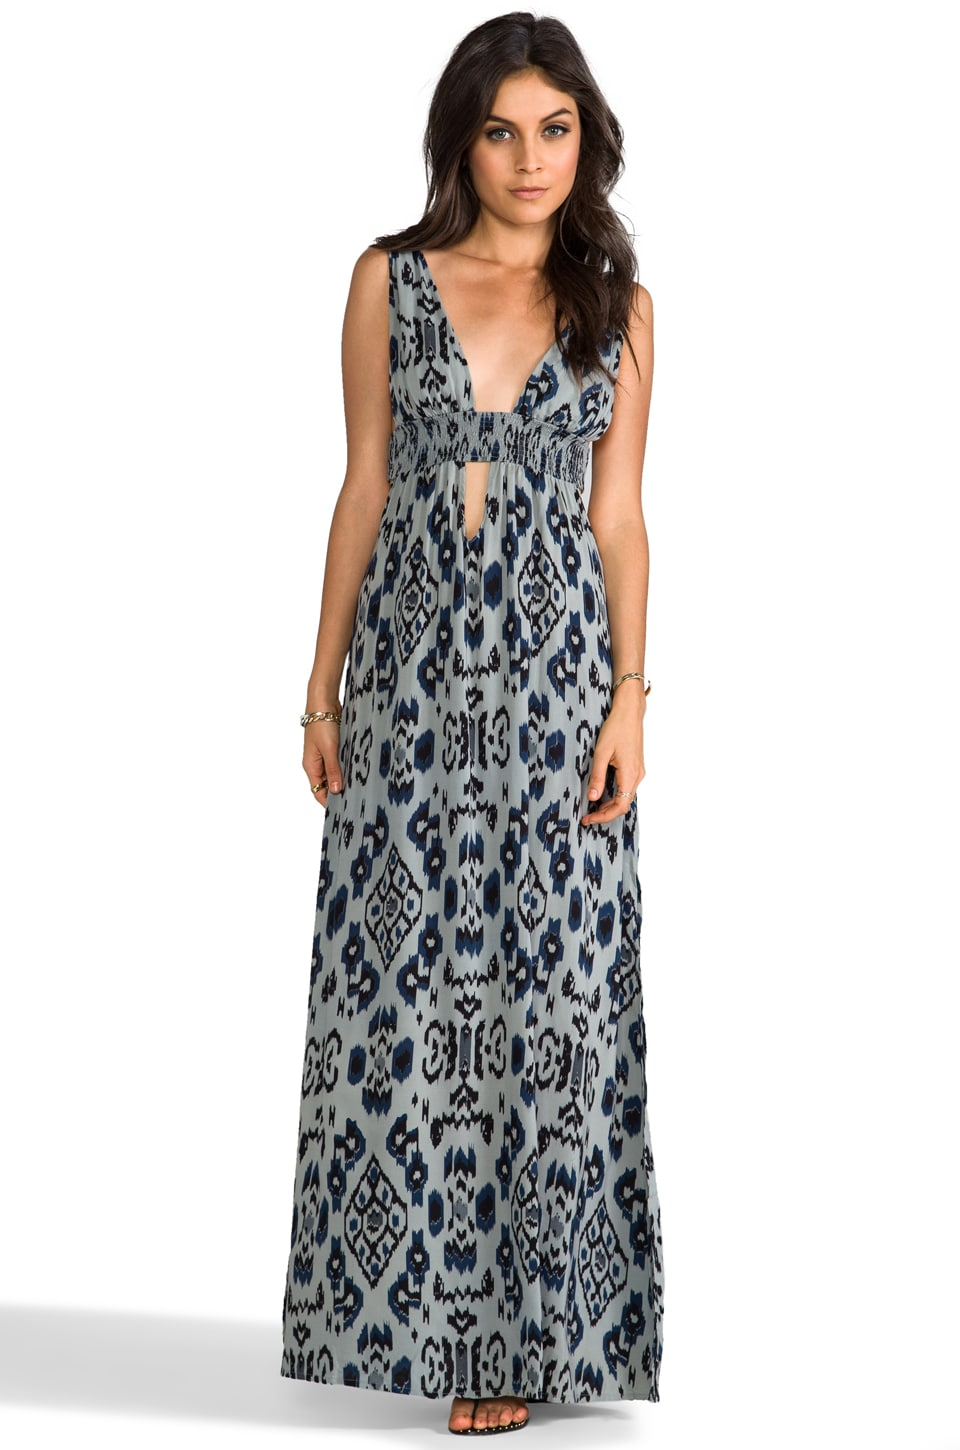 Indah Anjeli Plunging V-Neck & Back Empire Maxi Dress in Borneo Grey